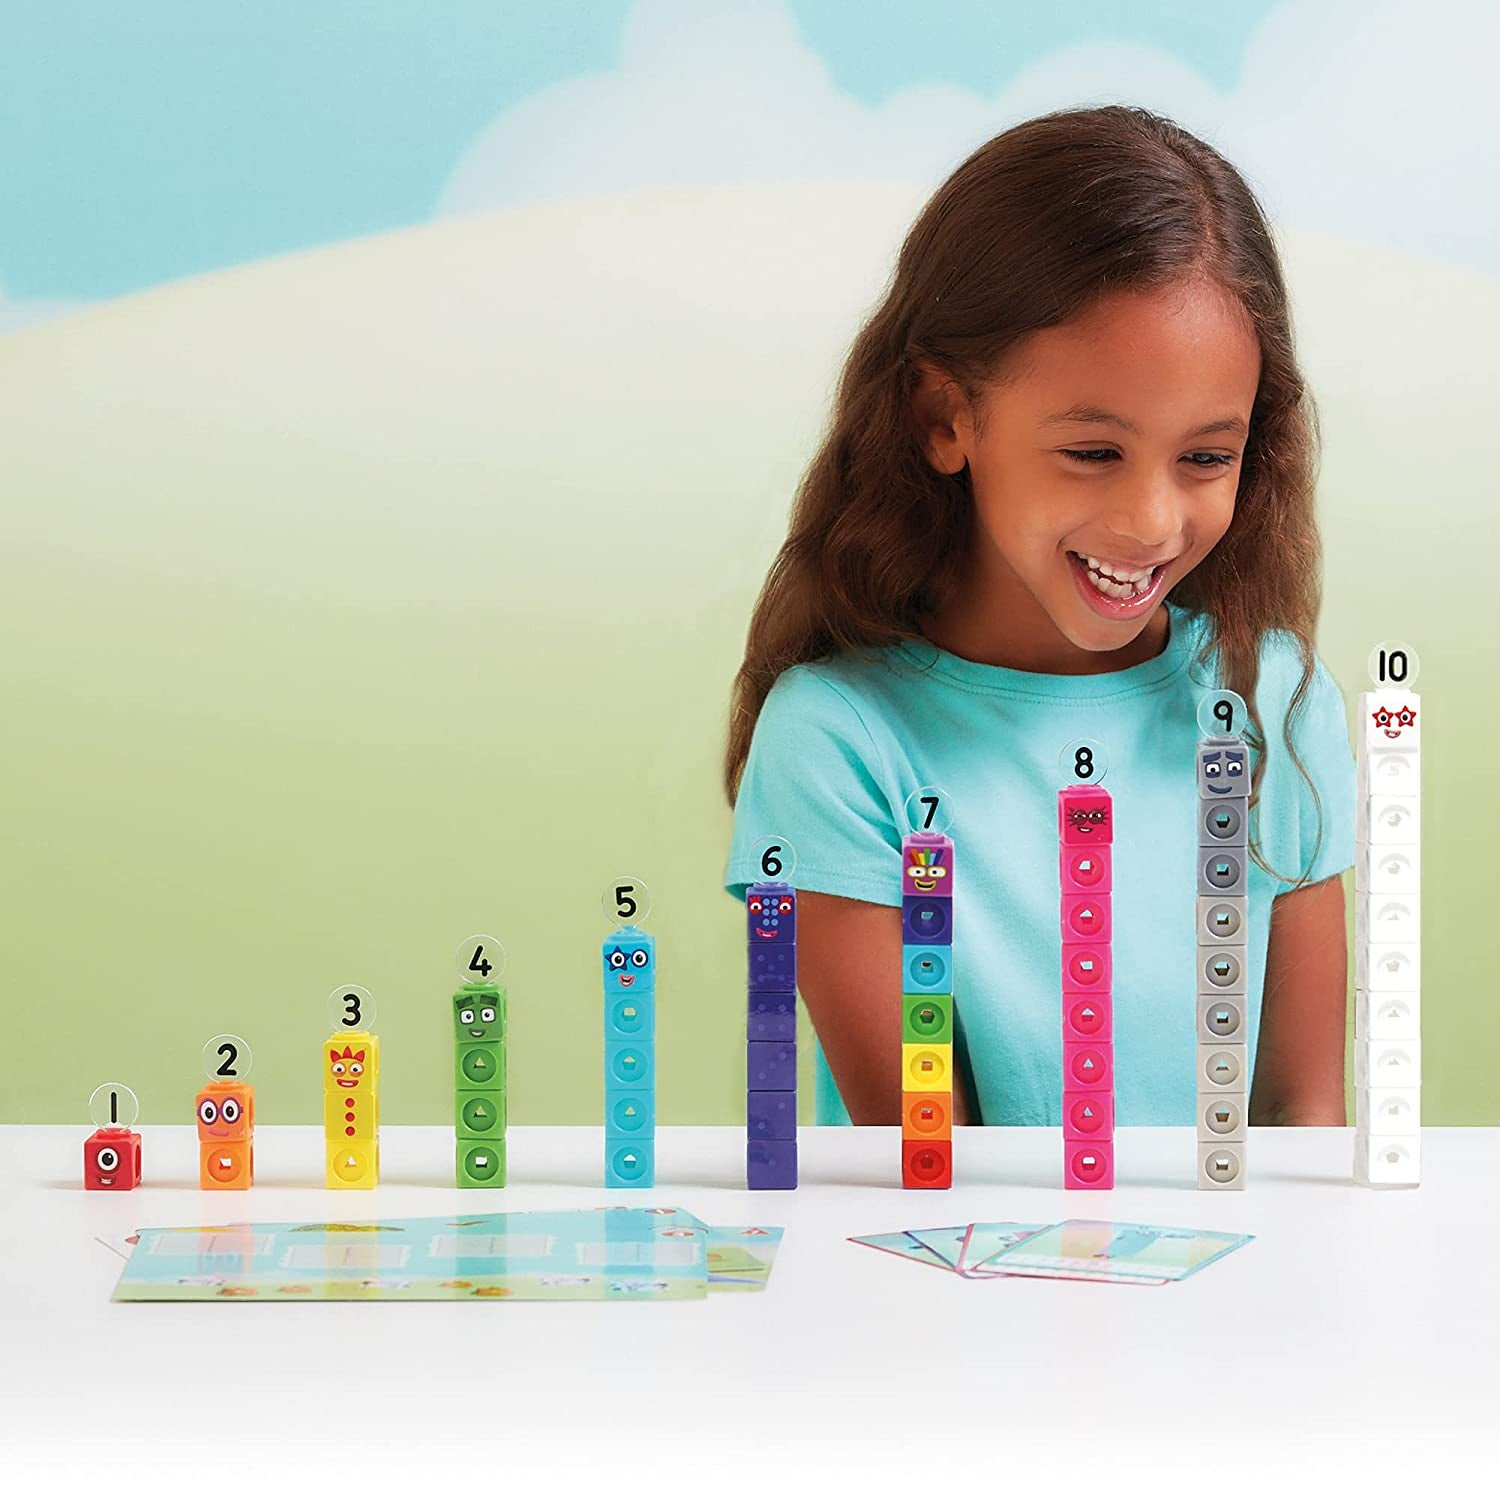 Child model playing with stacks of Numberblock toys